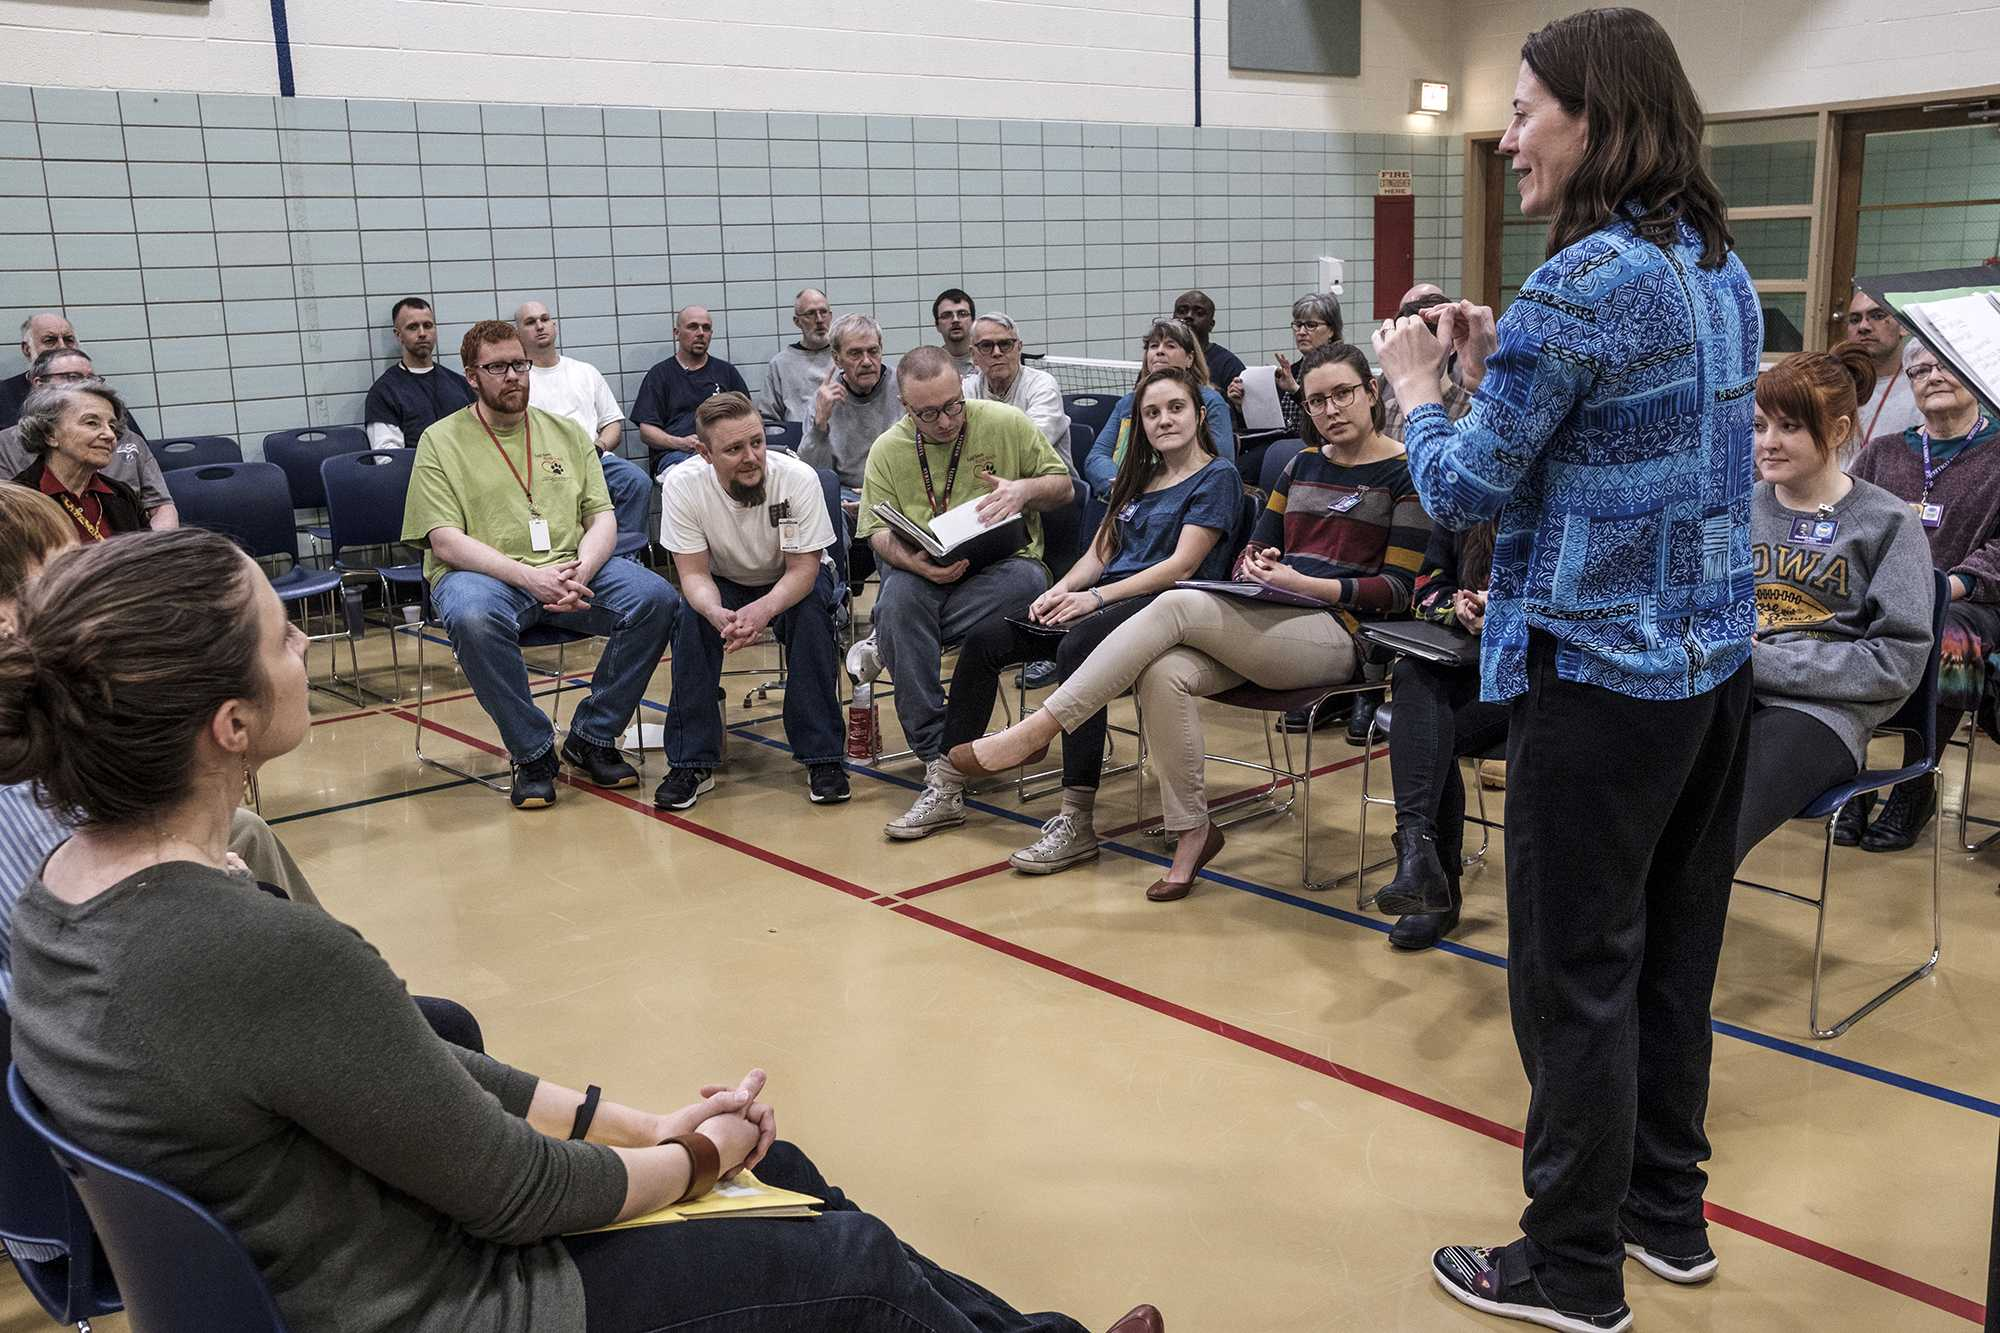 College prison program to bring undergrads and inmates together